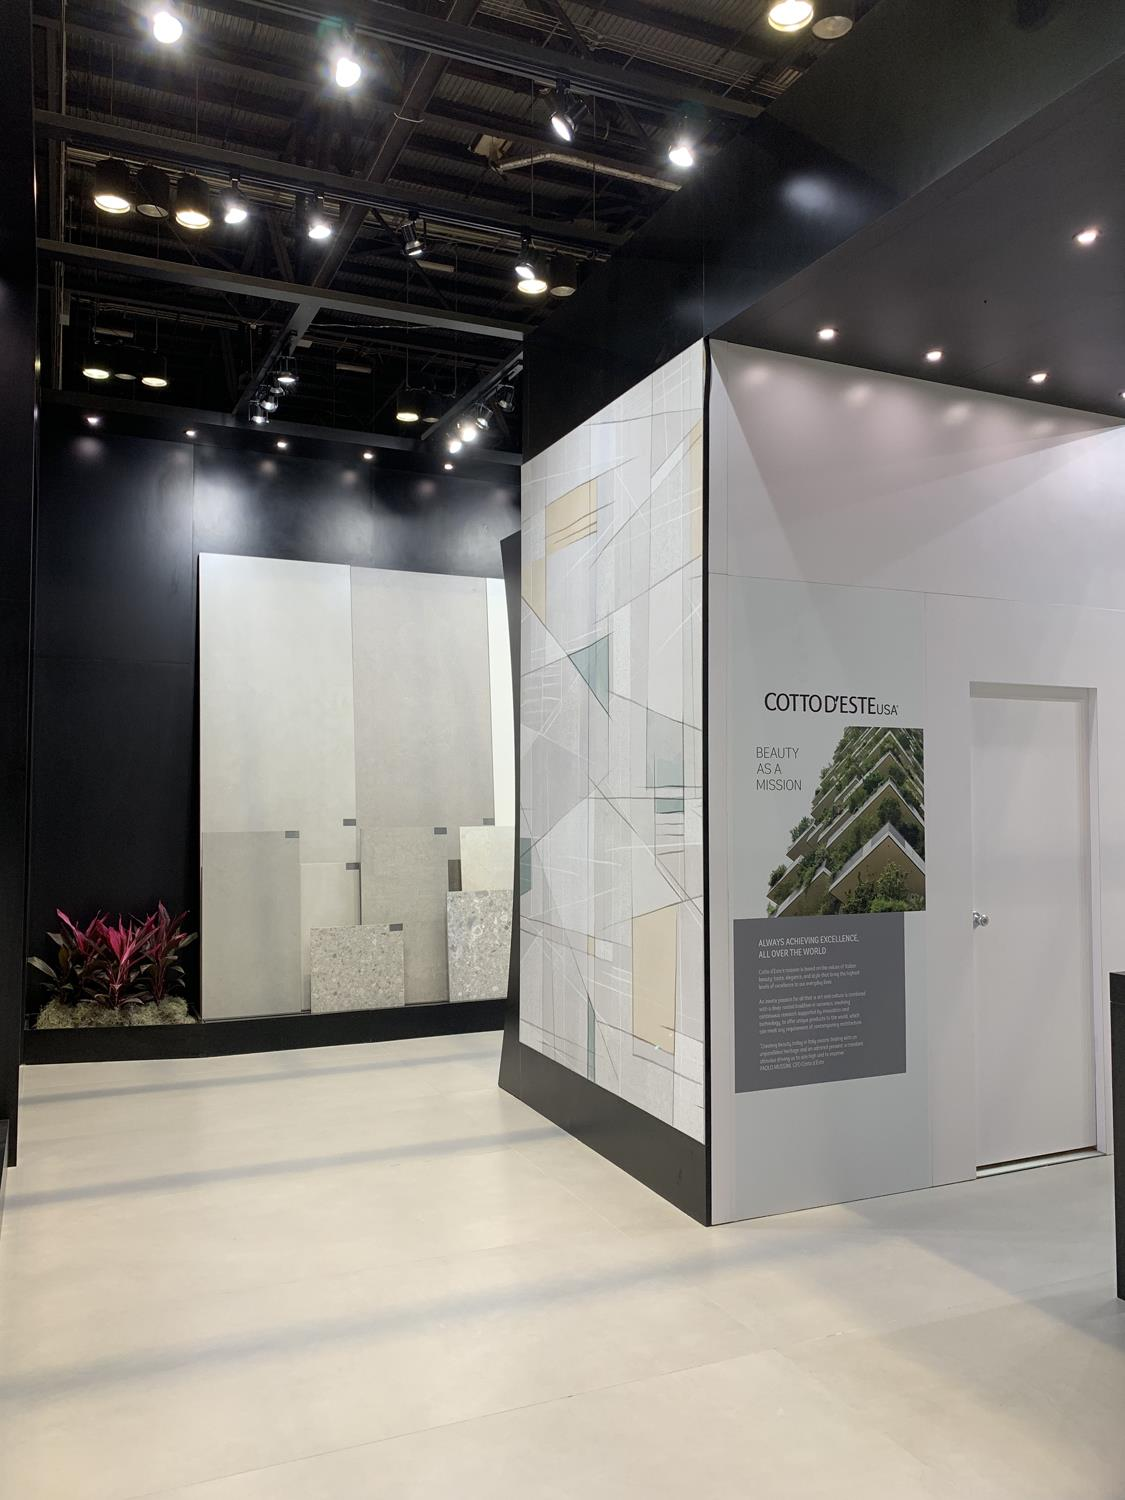 Cotto d'Este @ Coverings 2019: Photo 9